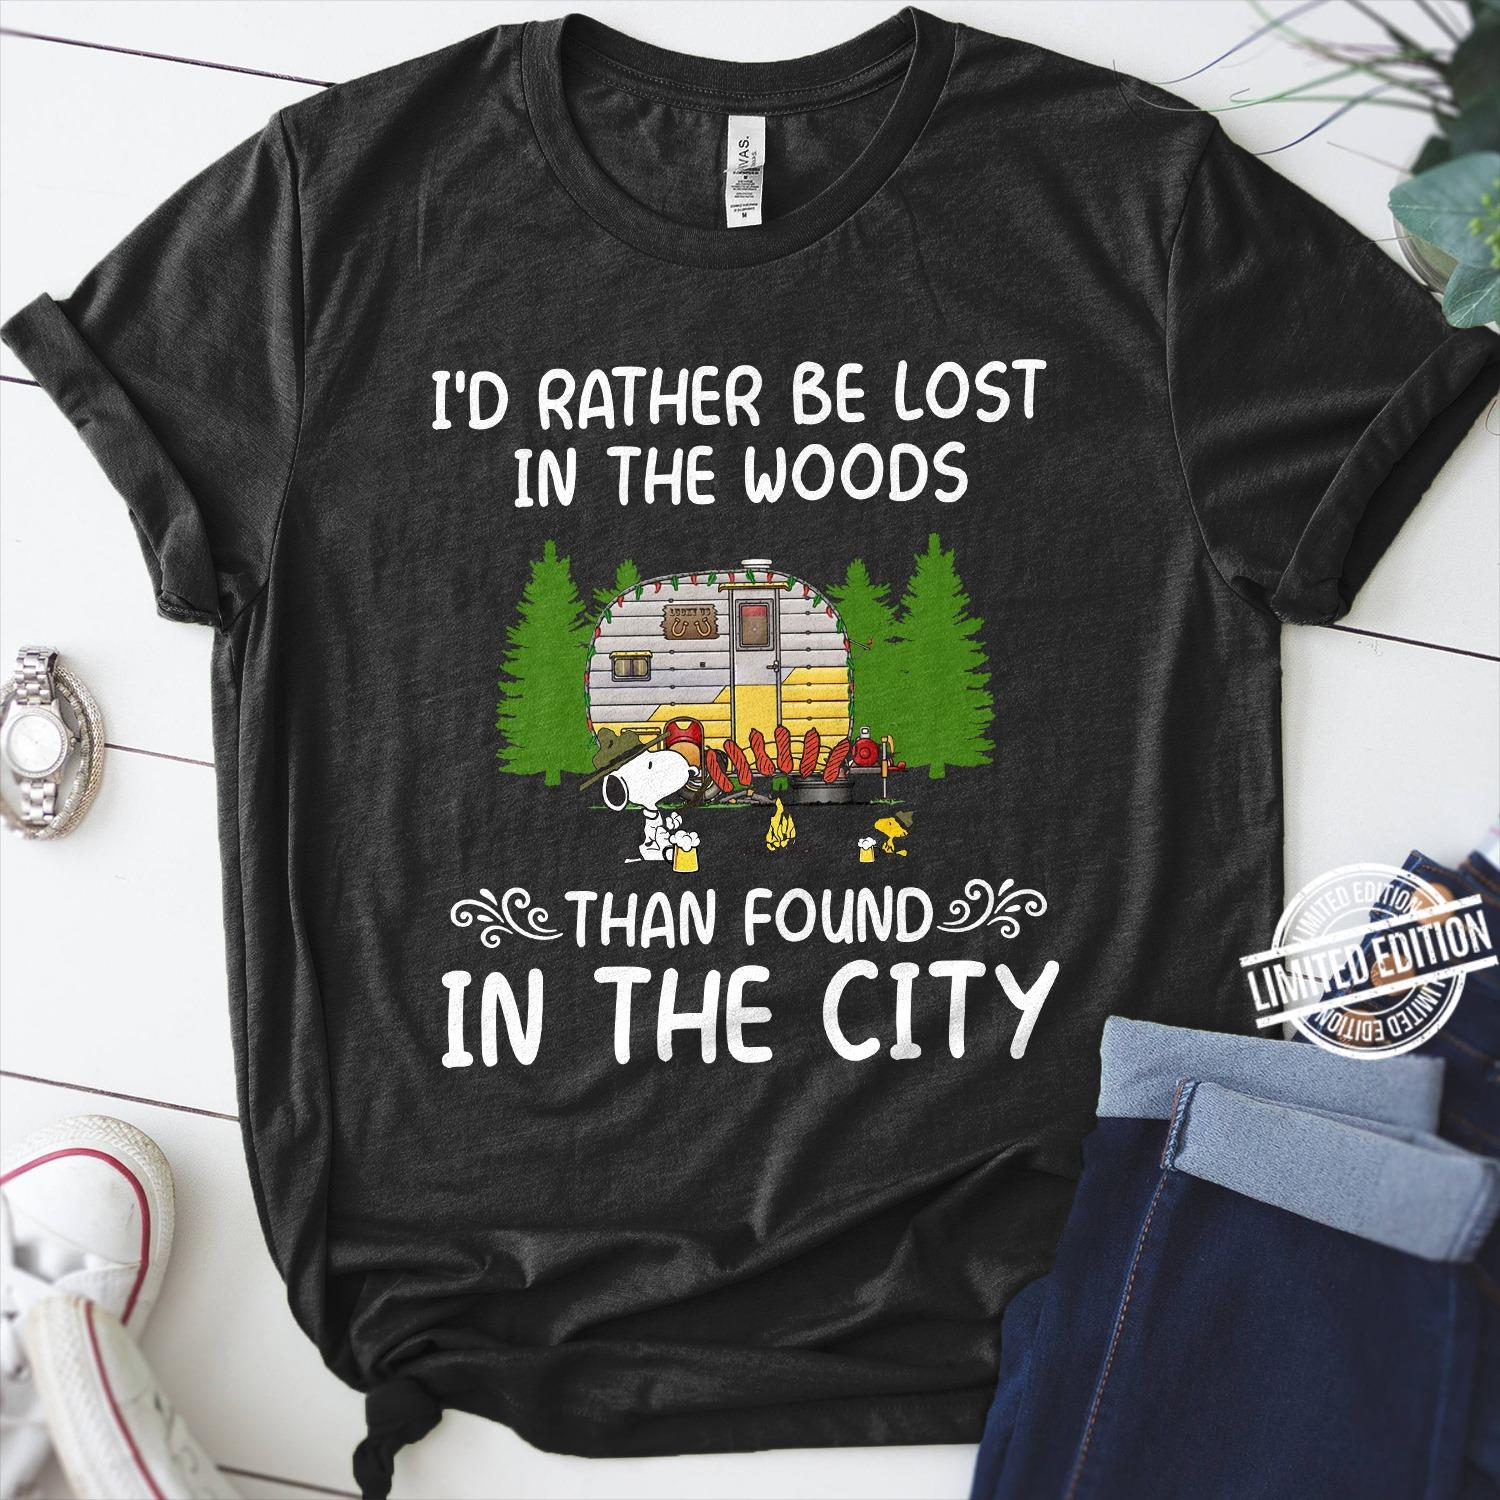 I'd rather be lost in the woods than found in the city Shirt